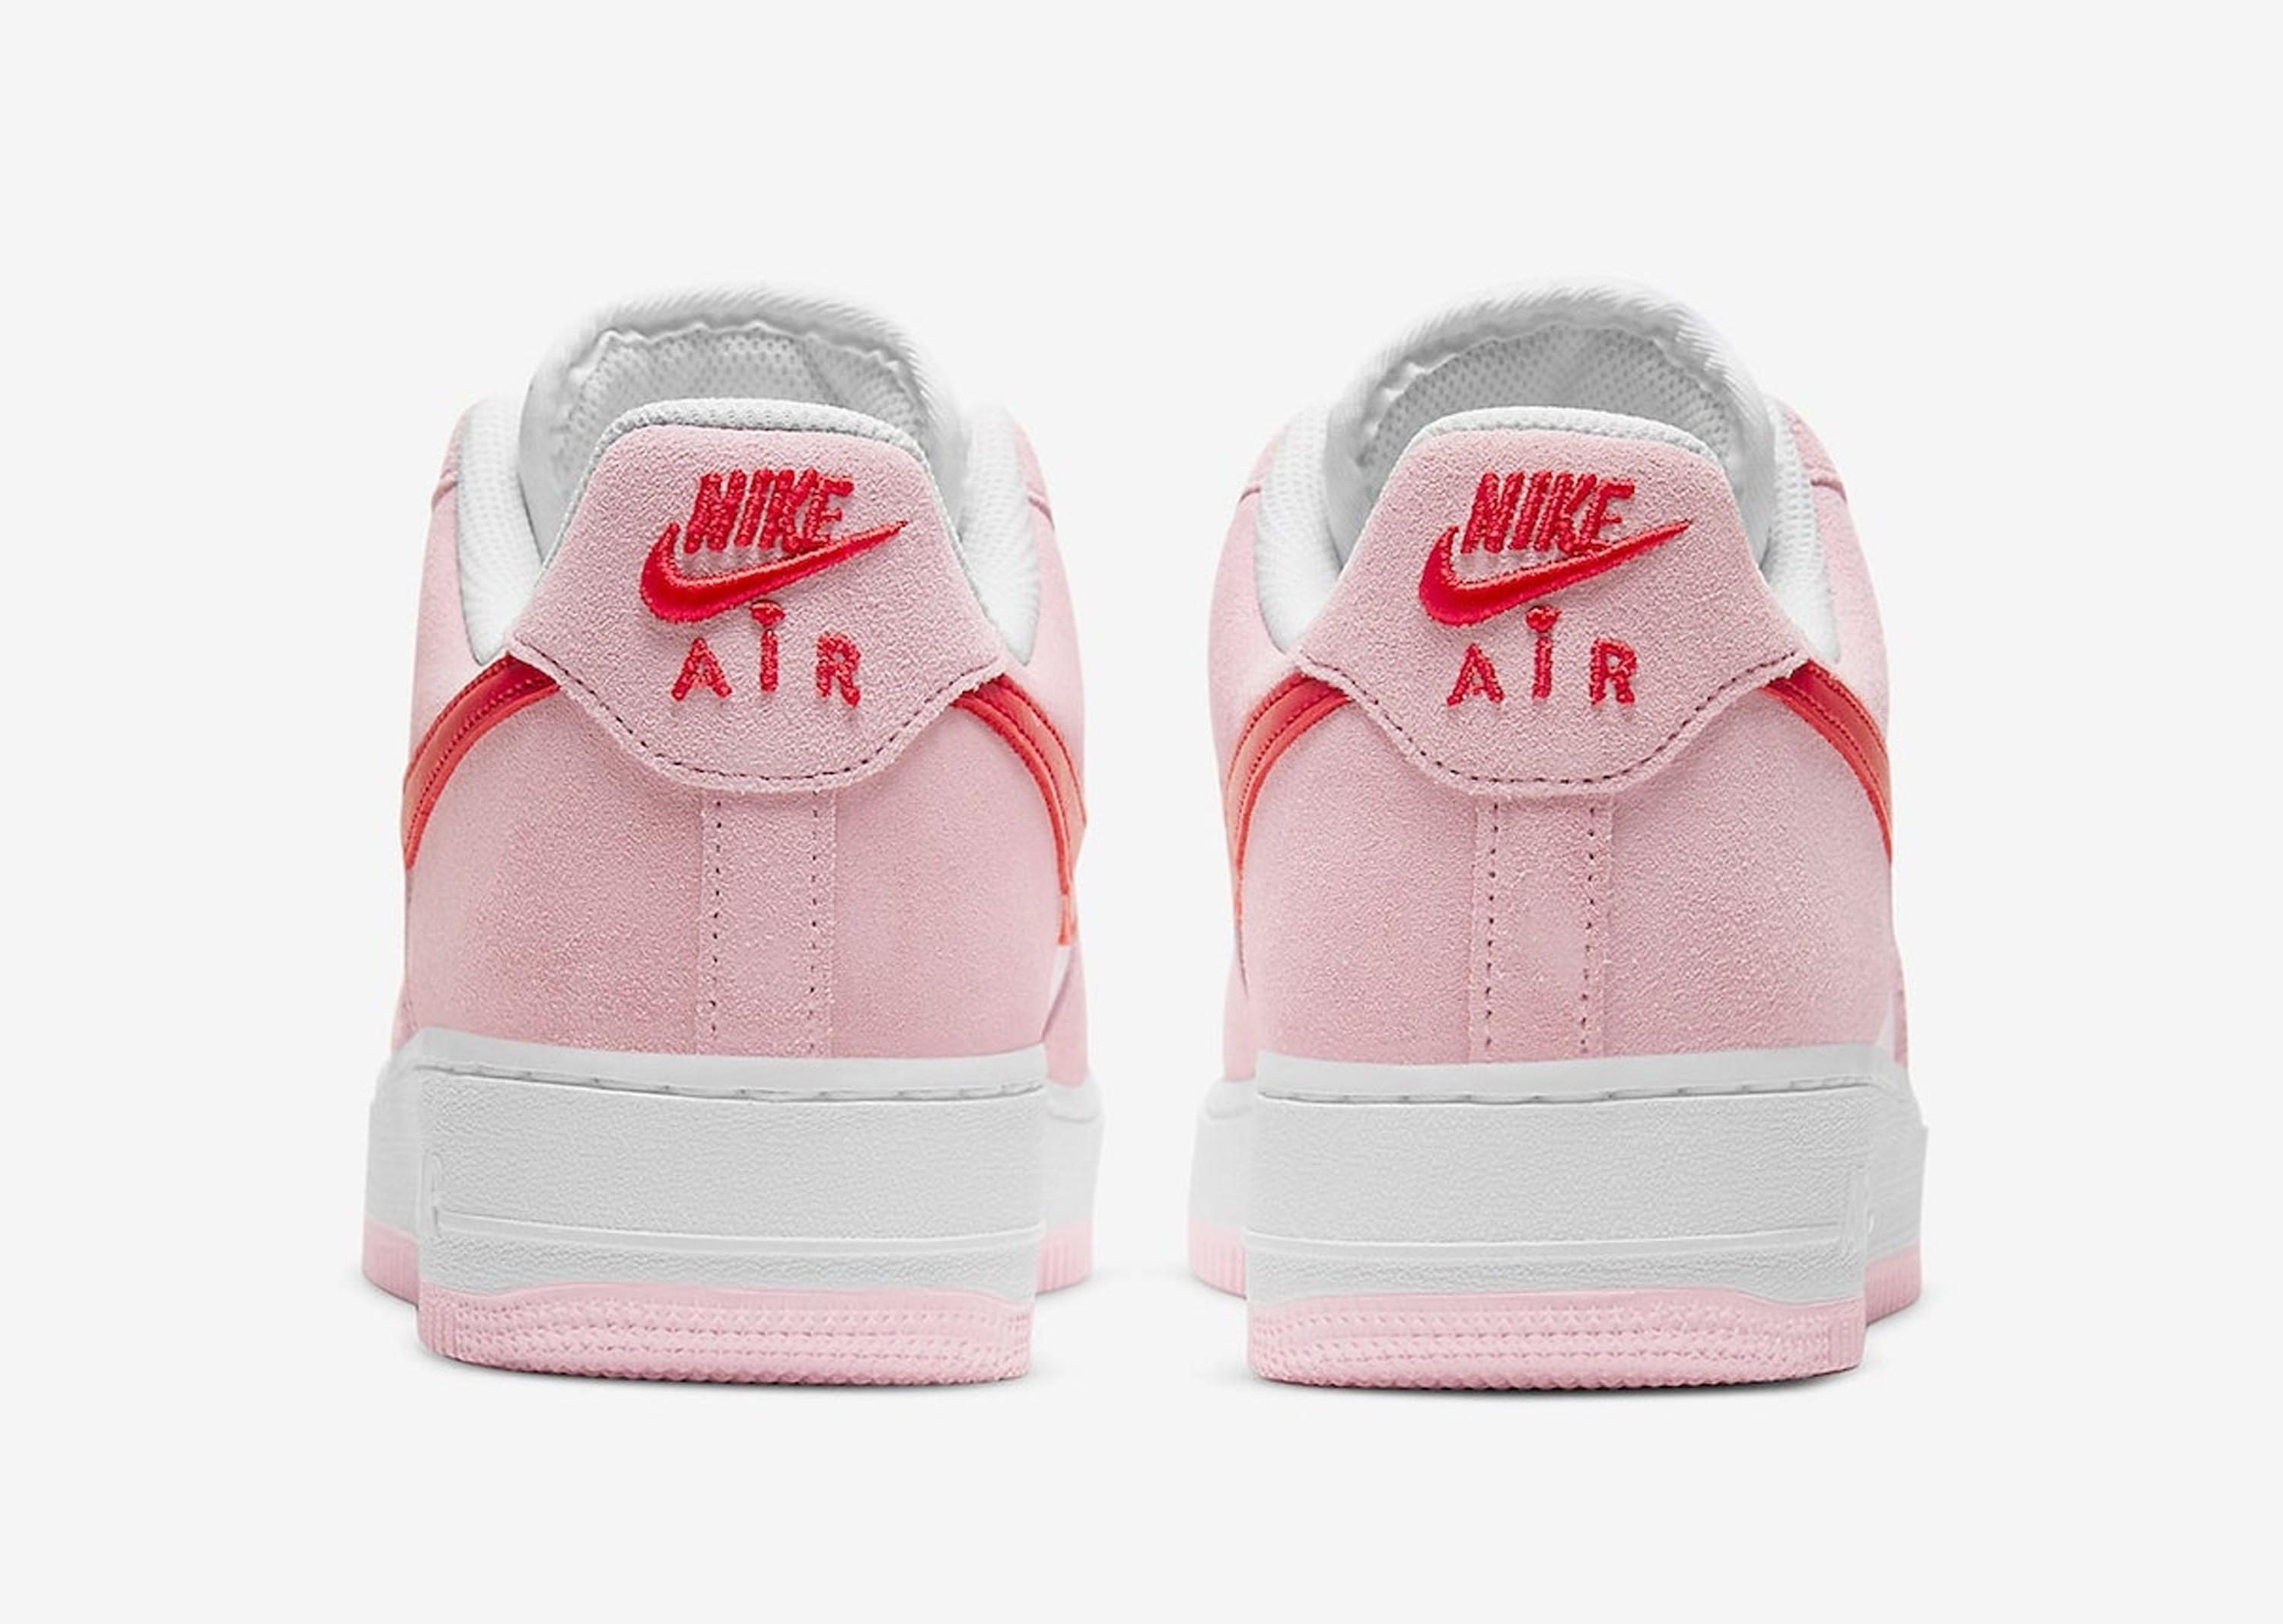 af1_valentines_day_blog_0000_Layer 4